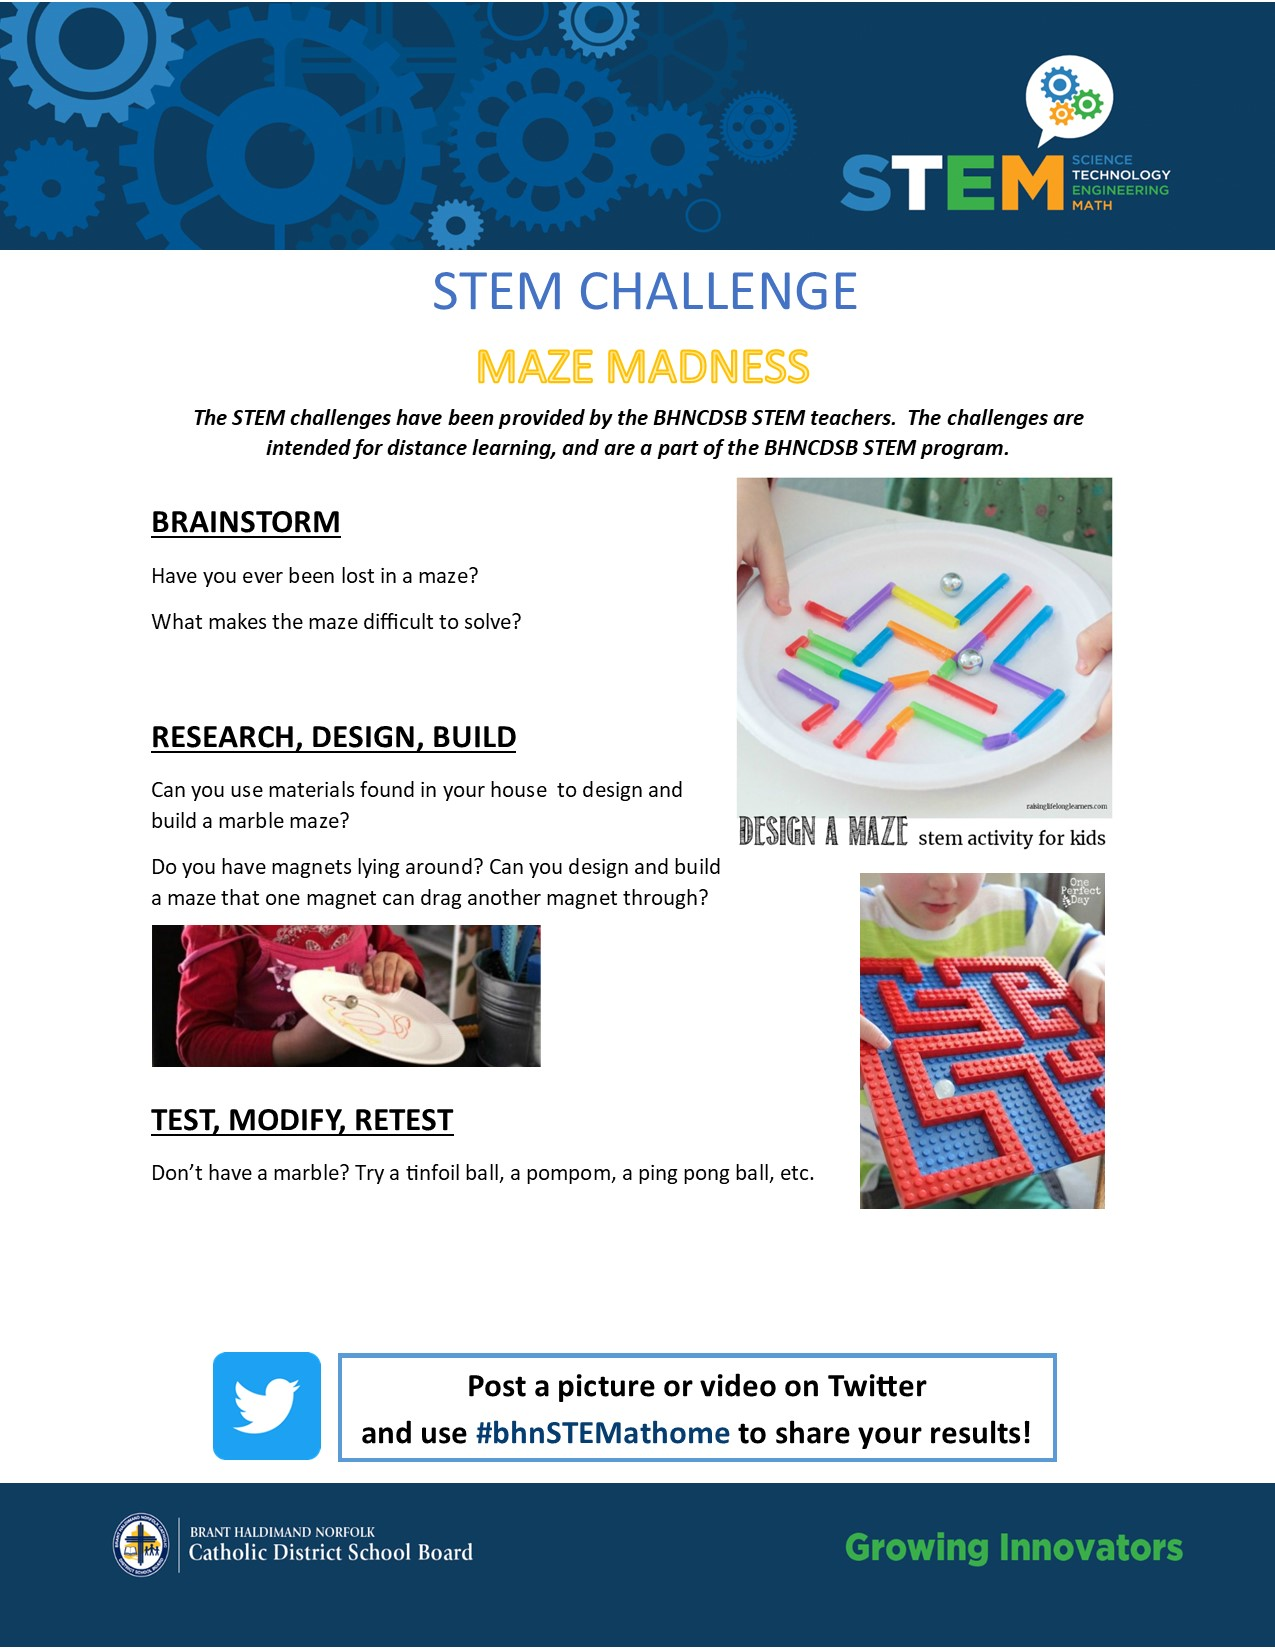 Bhn Stem On Twitter Stem Challenge 35 Ok Stemmers Let S Have Fun With Mazes Can You Build A Marble Maze Https T Co L2ghbgg2ay Or How About A Magnetic Maze Https T Co 5iysnuv5an Share A Photo Or